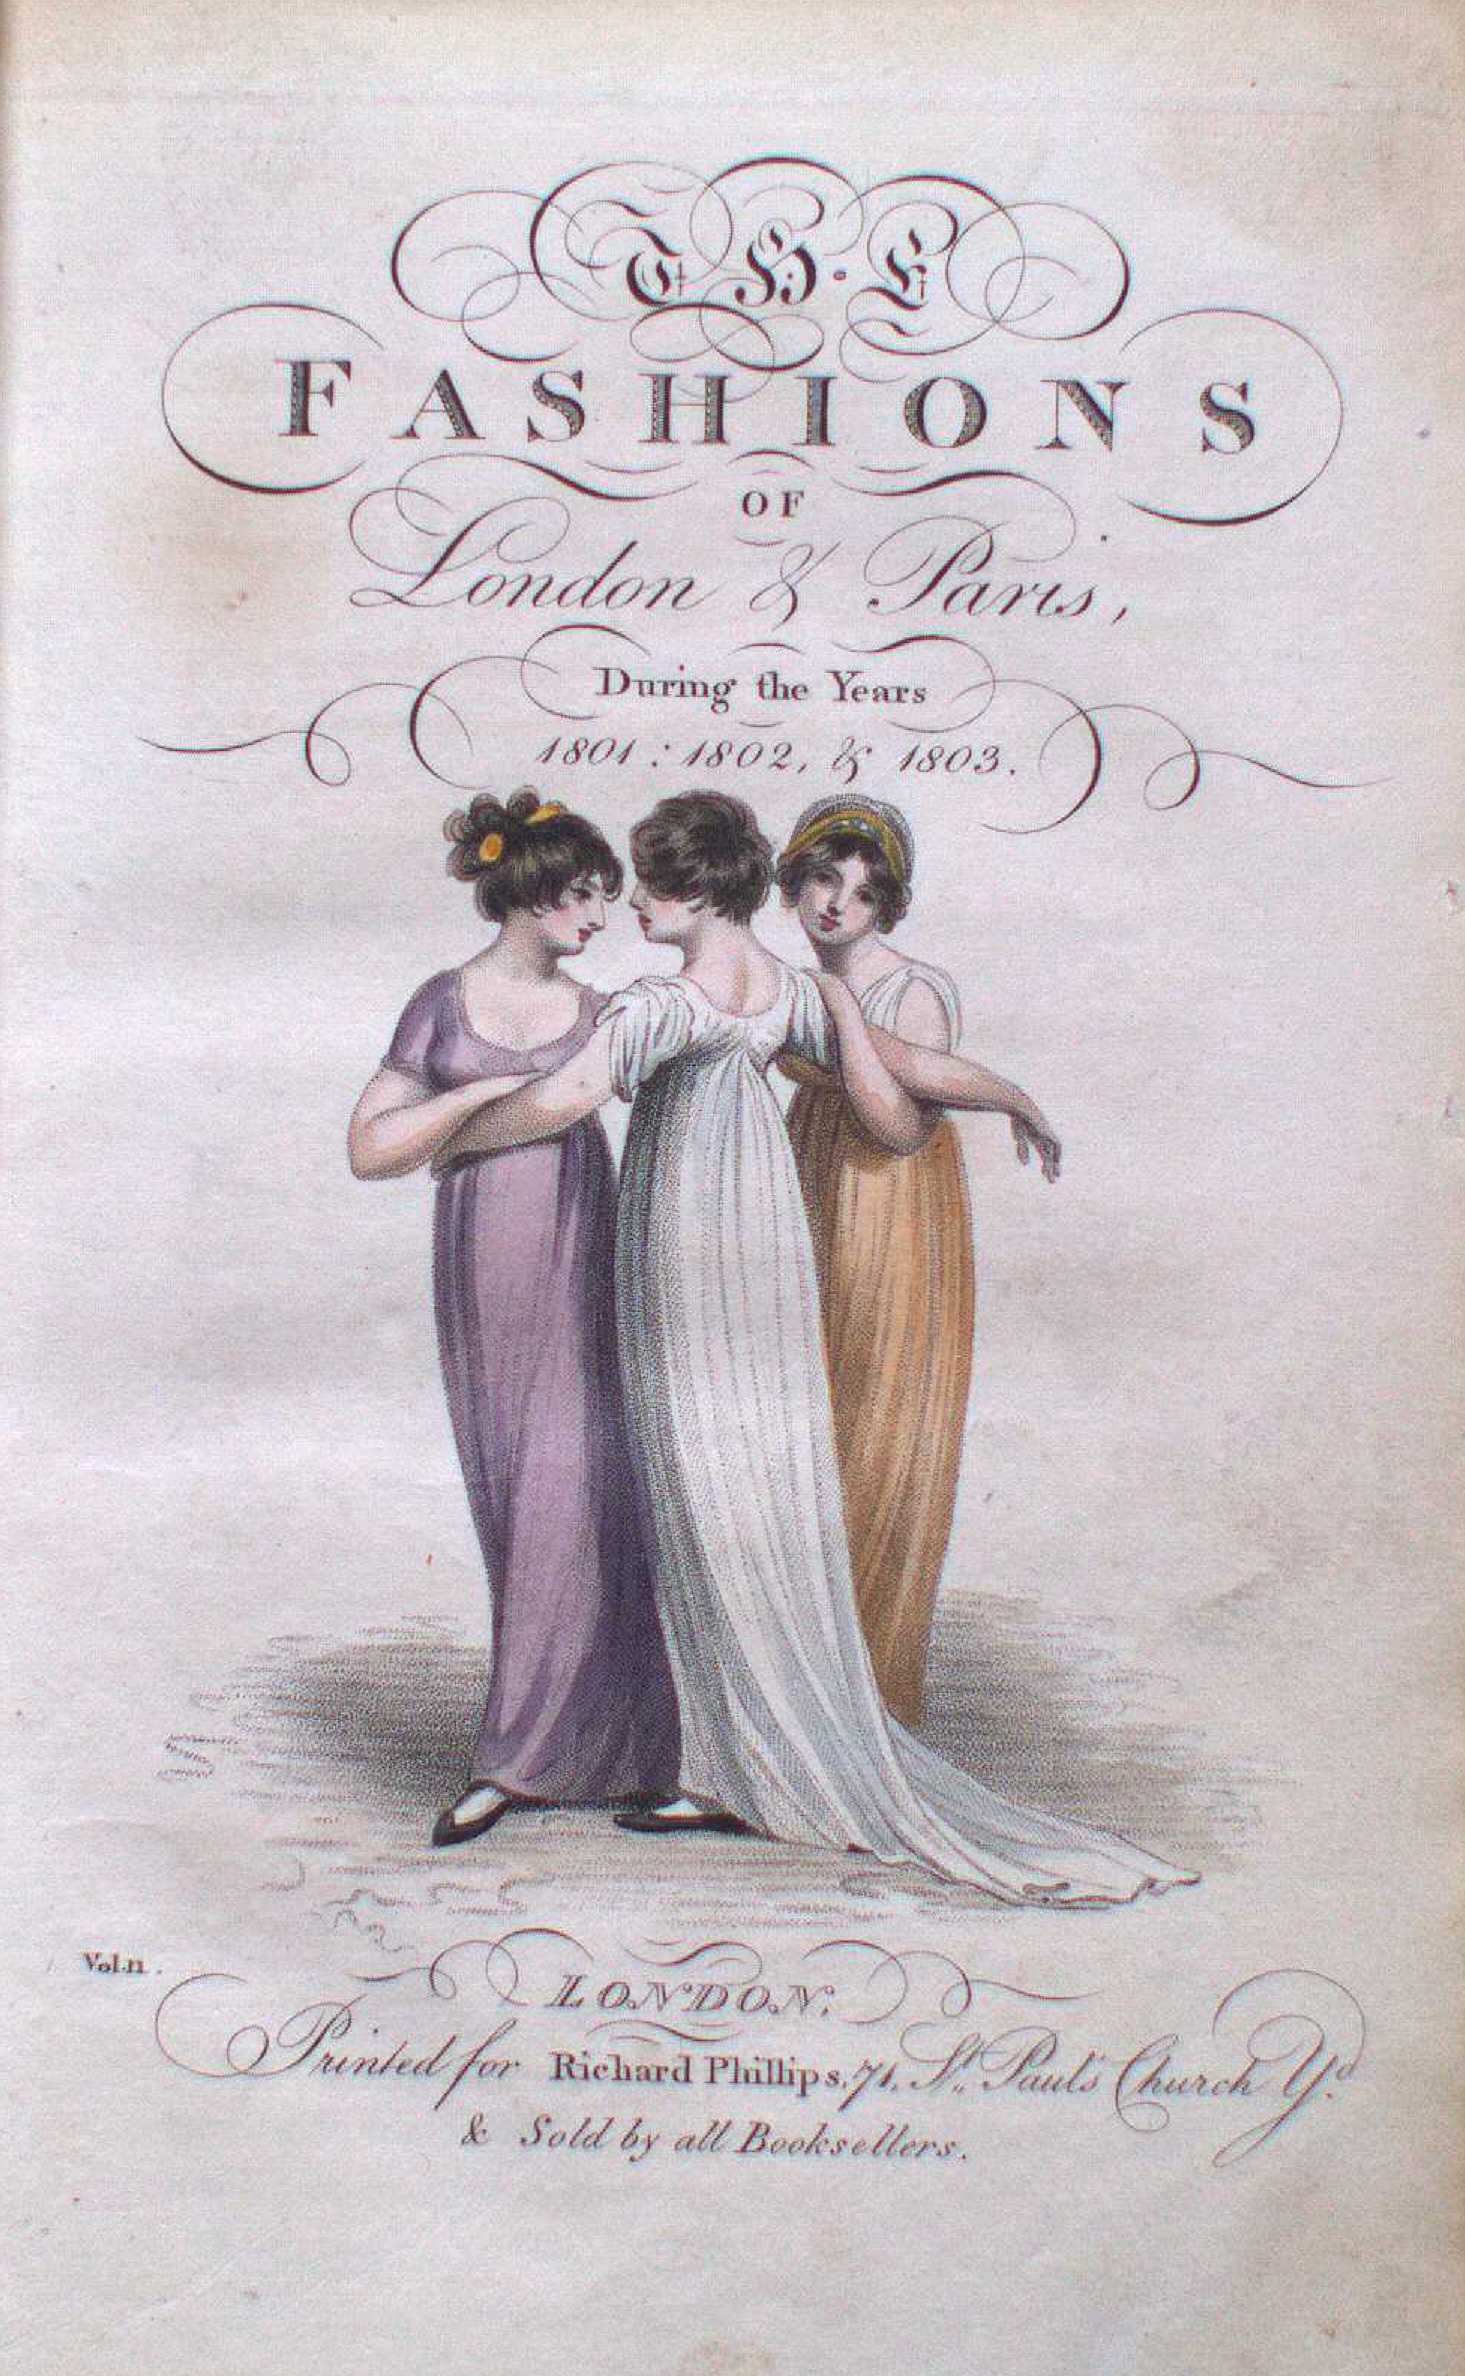 Fashions of London and Paris, title page